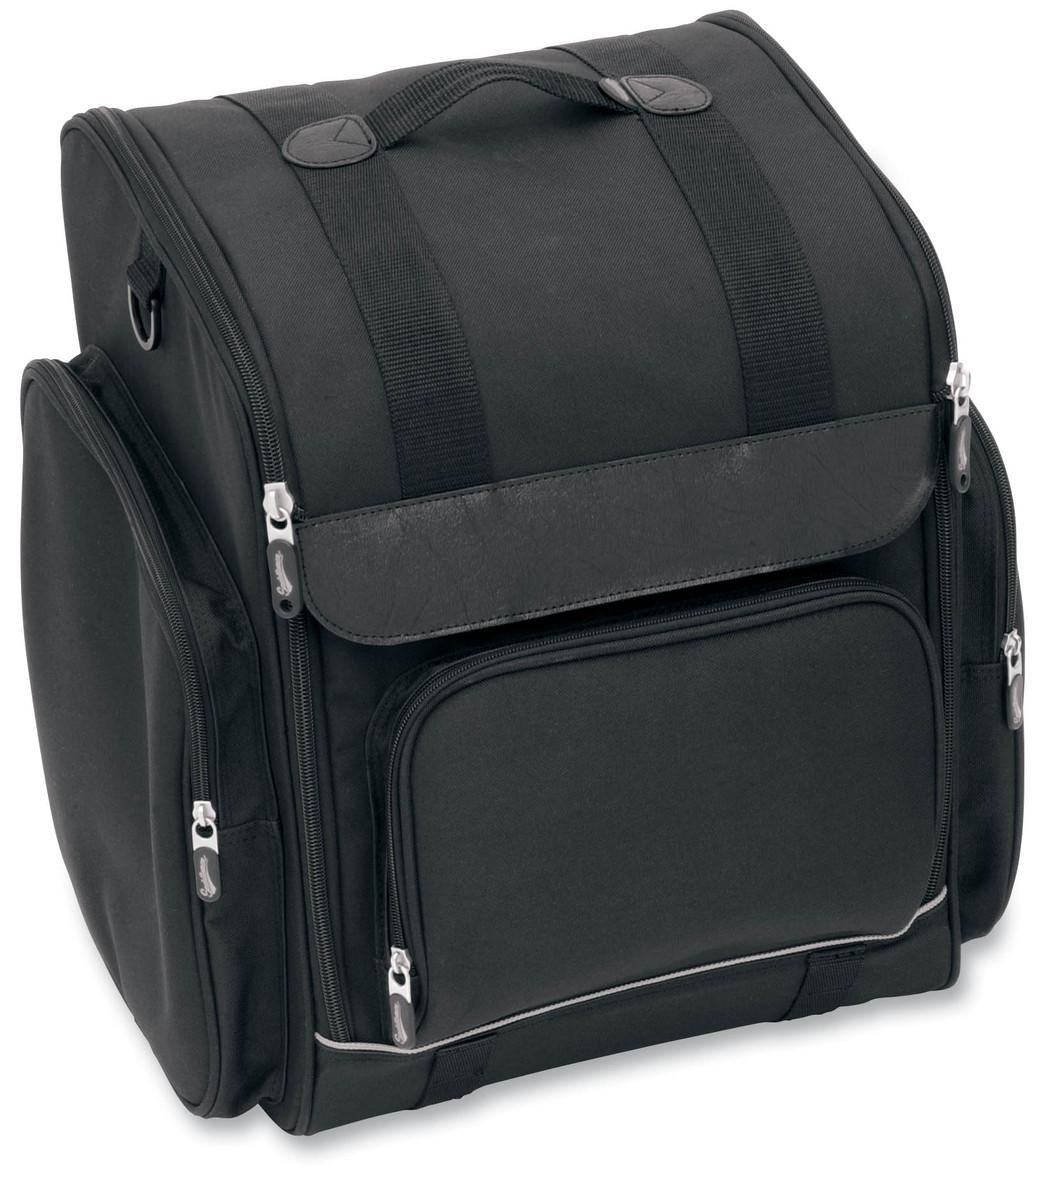 Saddlemen 3515-0078 Universal Bike Bag by Saddlemen